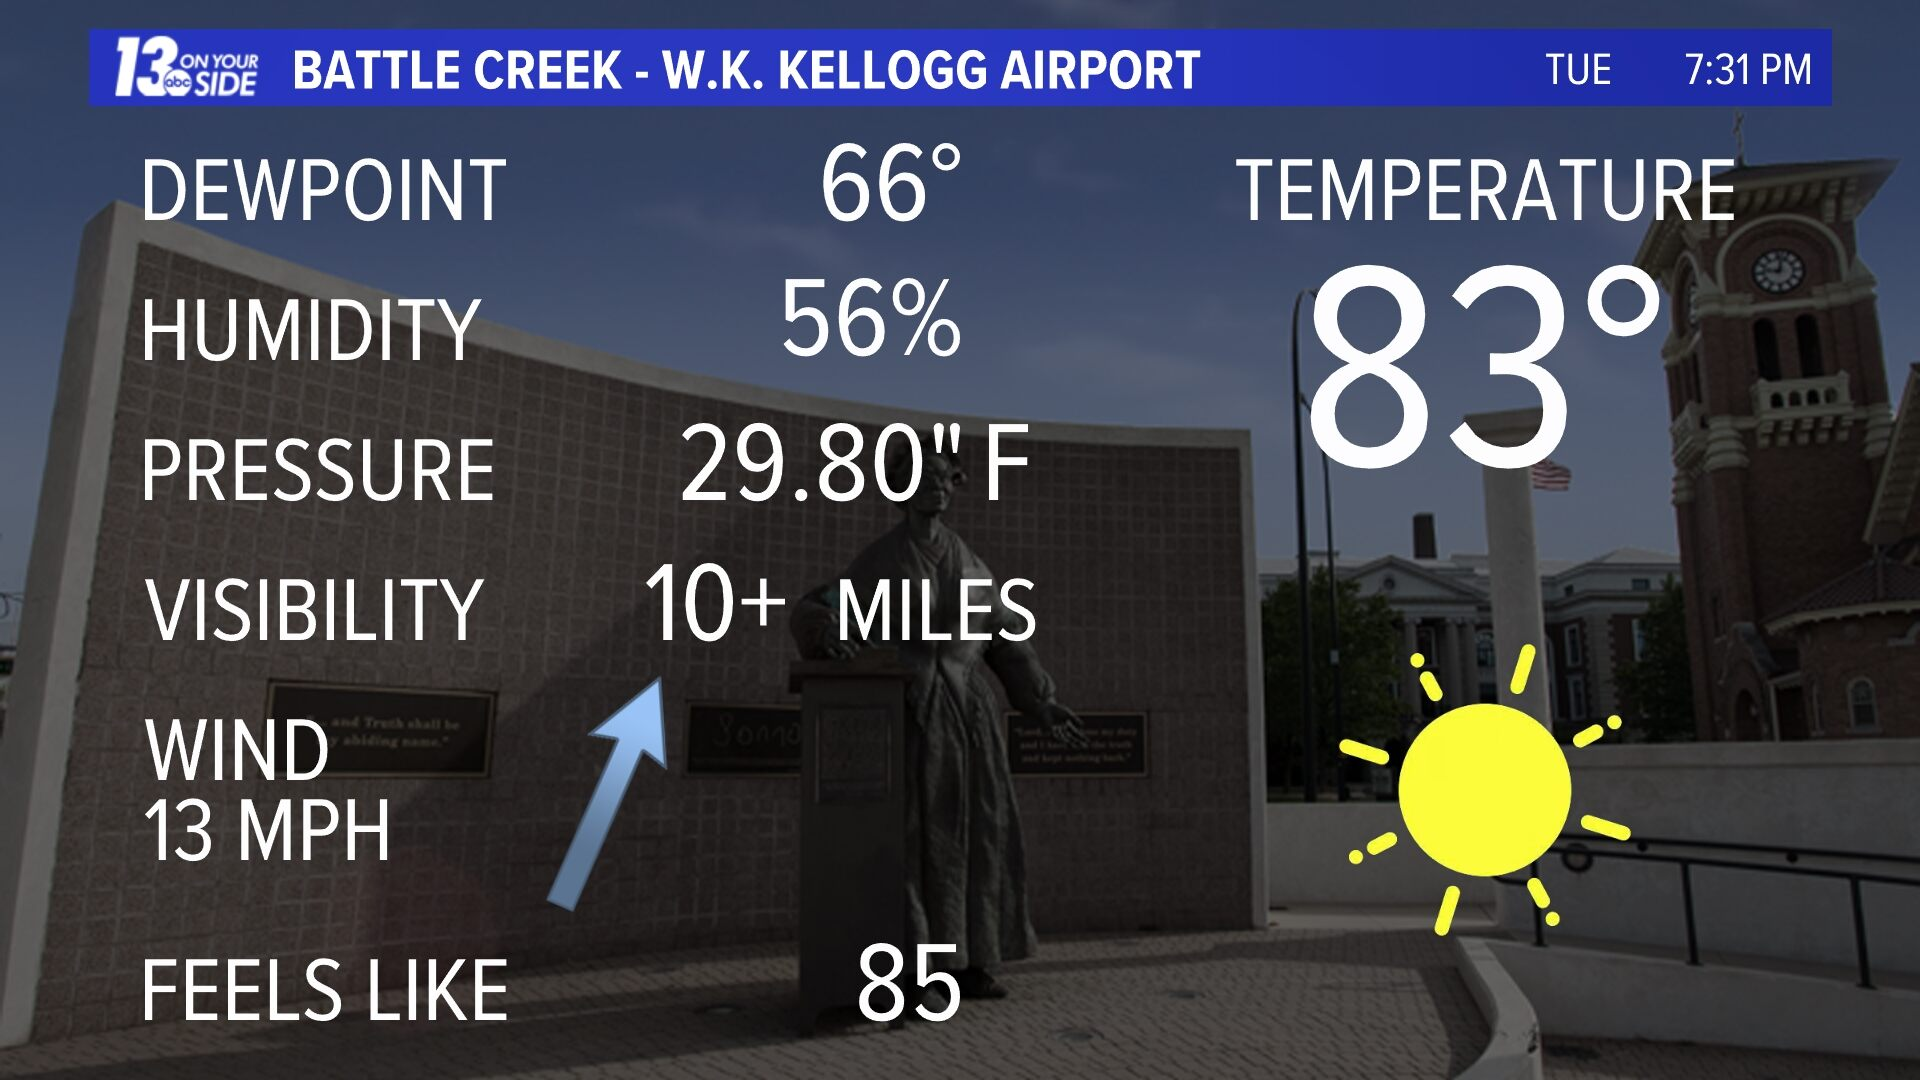 Battle Creek - W.K. Kellogg Airport